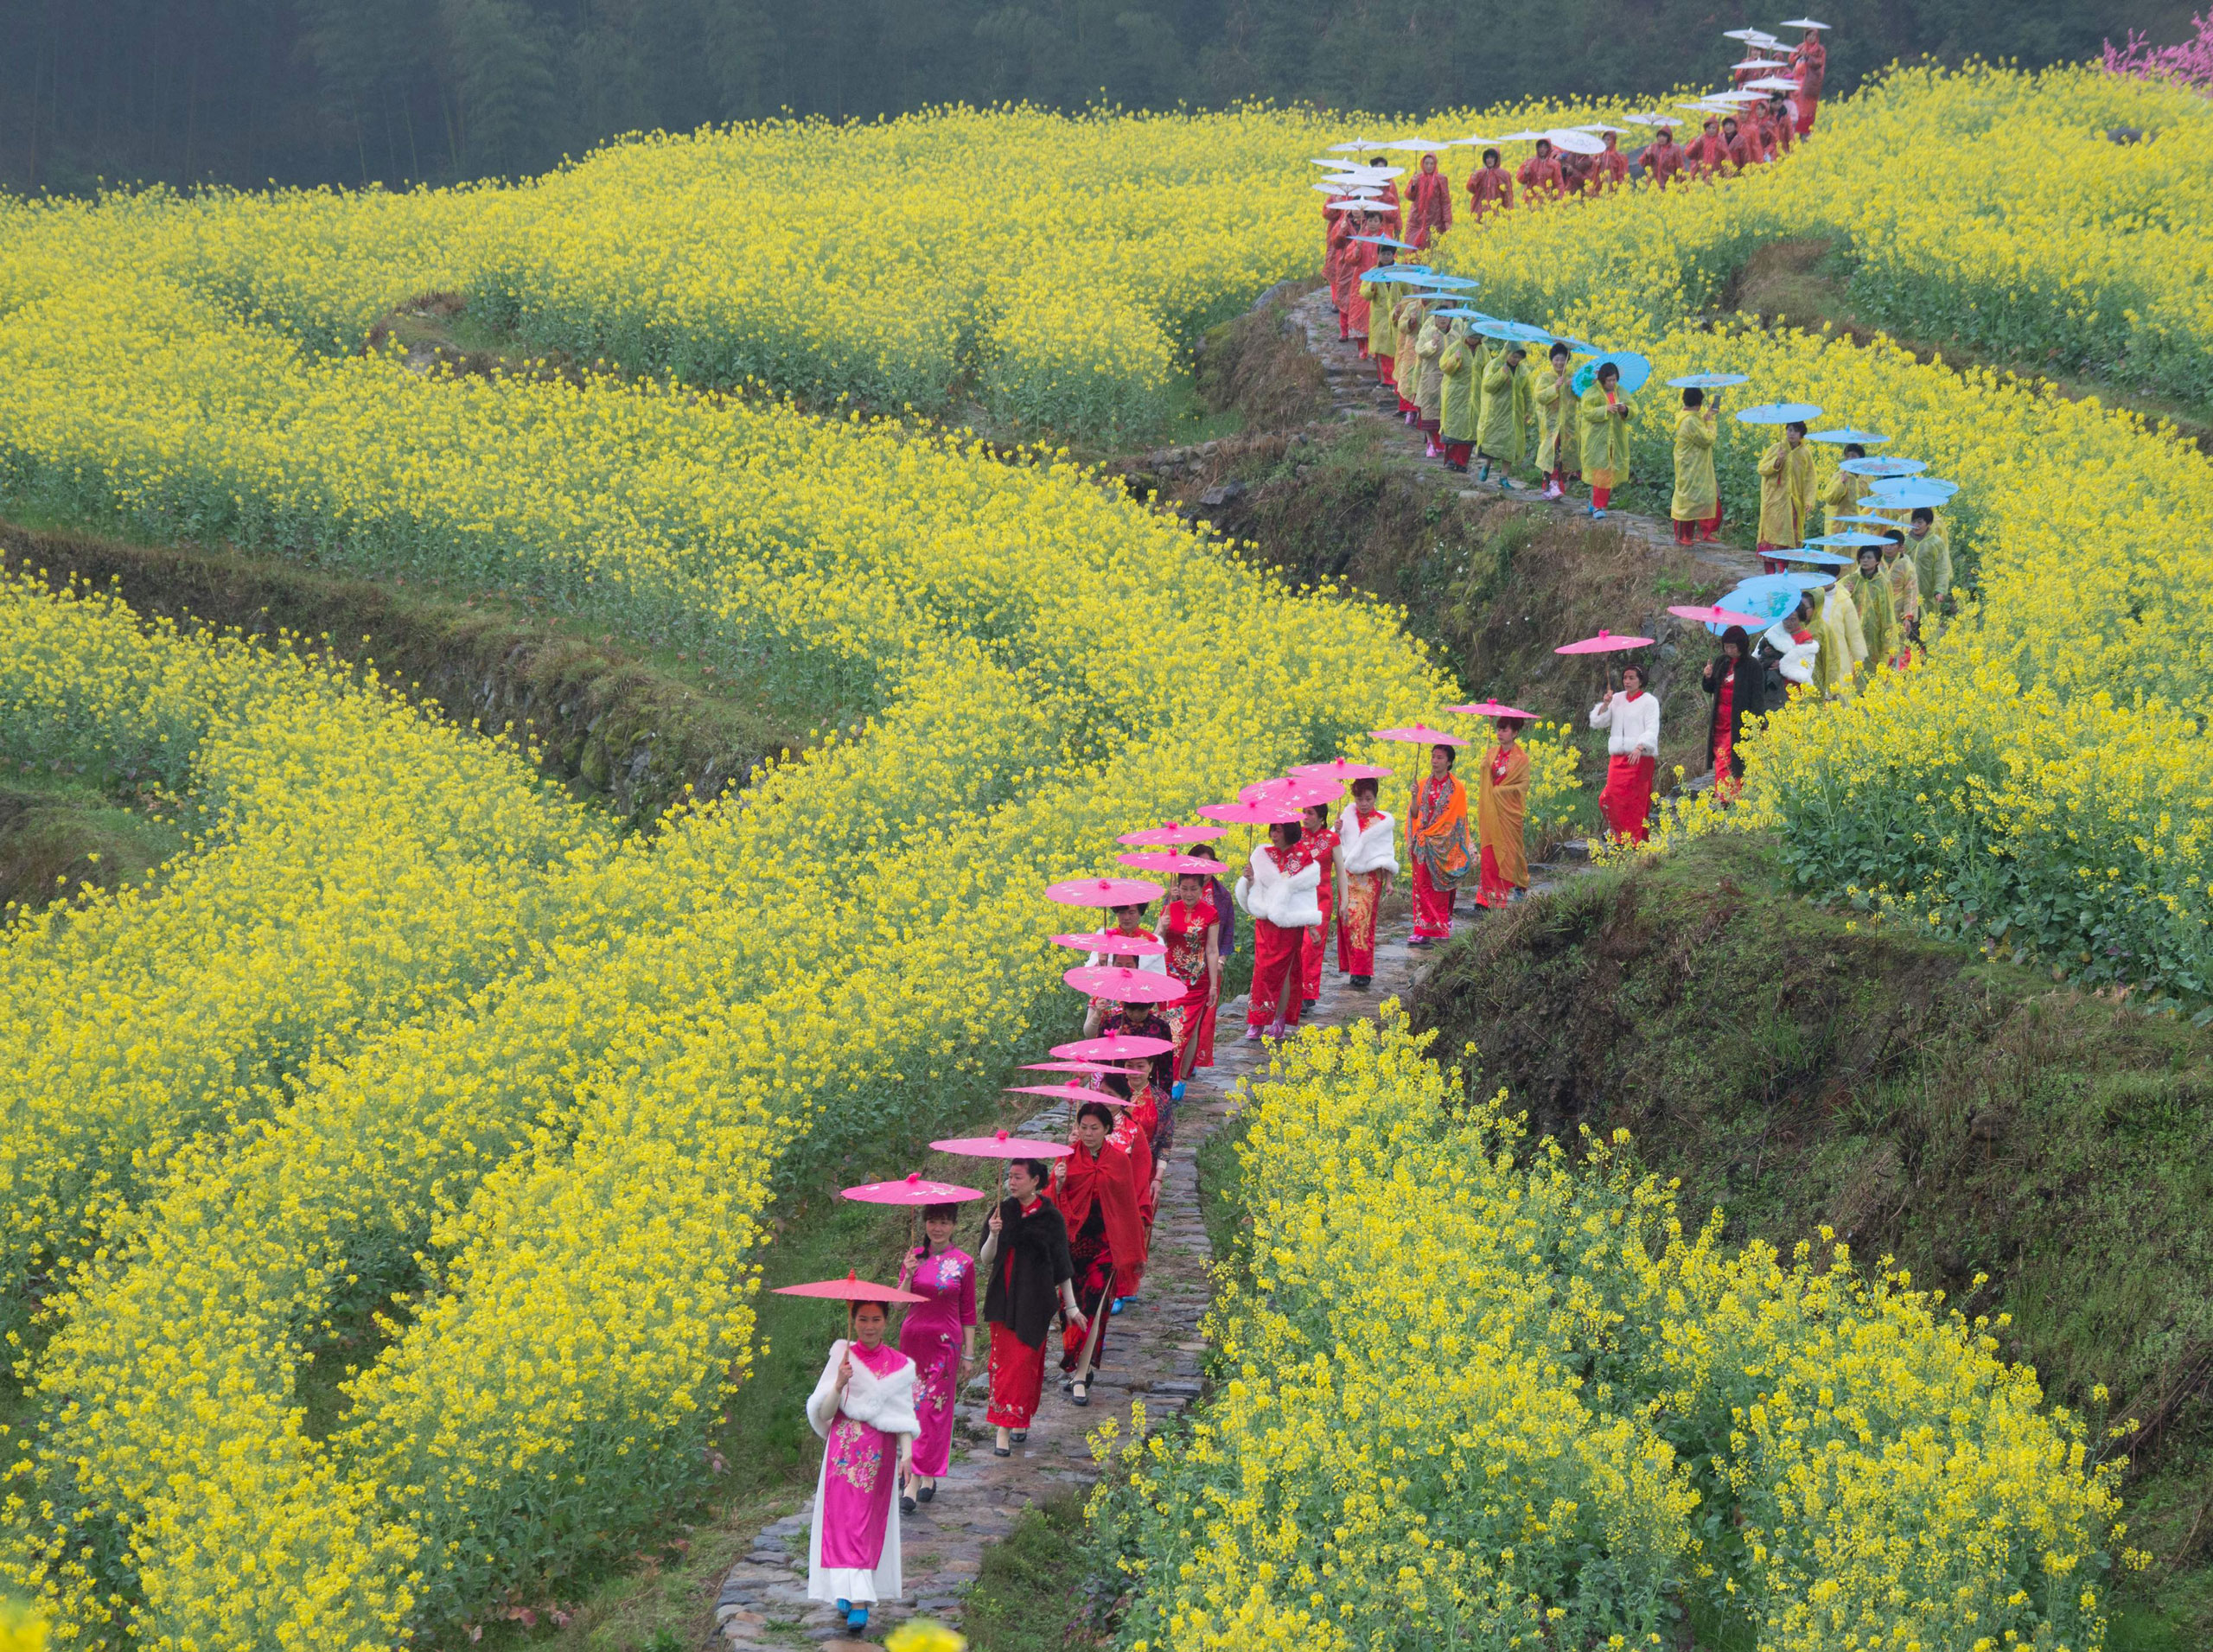 Cheongsam fans walk on the terrace fields of cole flowers at Lishantou Village in Longquan City, east China's Zhejiang Province on March 22, 2017.